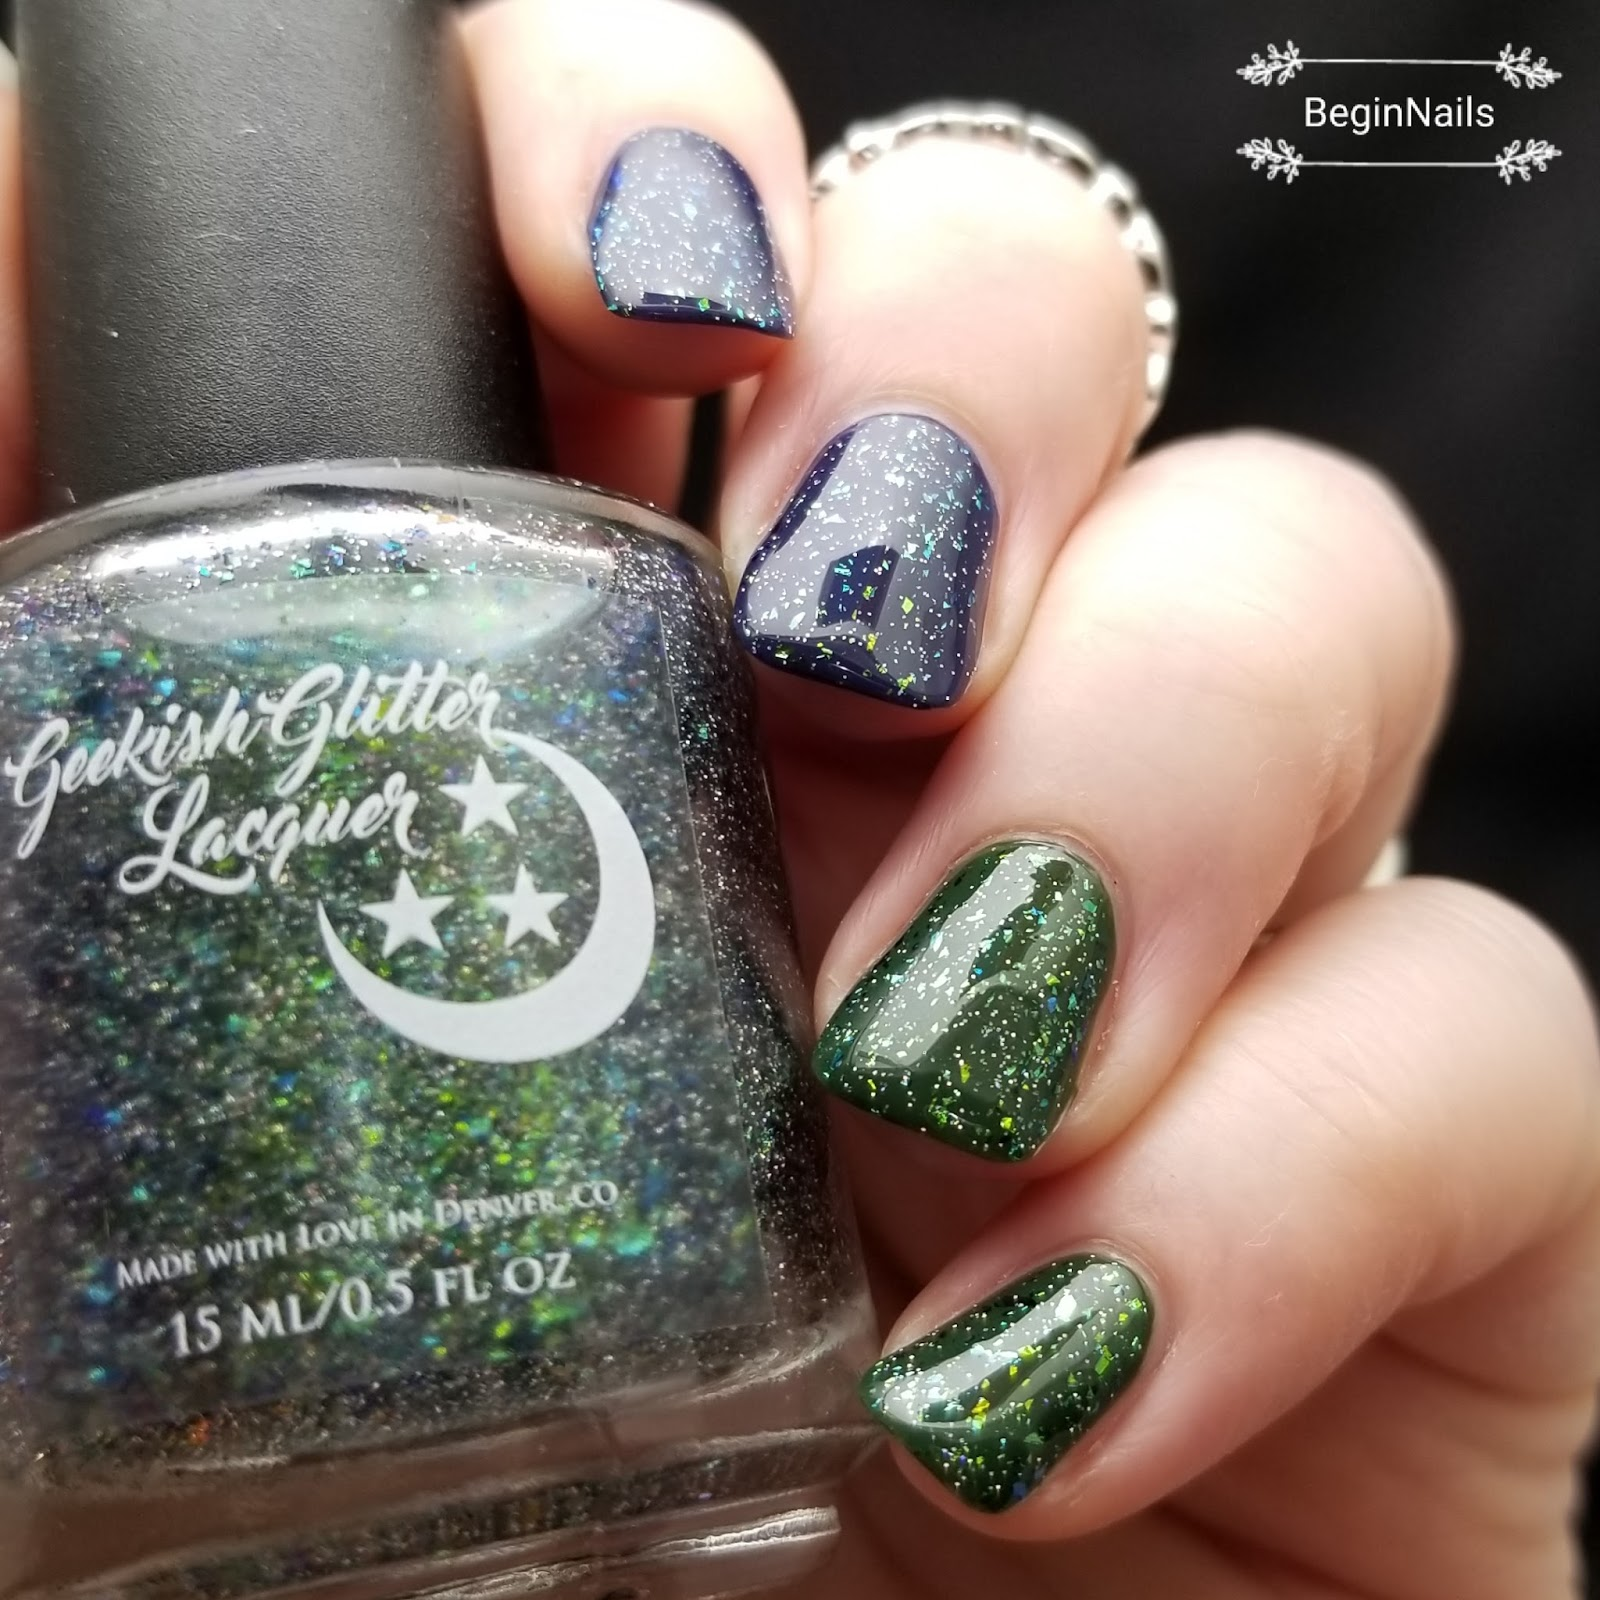 Let\'s Begin Nails: Geekish Glitter Lacquer Swatch and Review